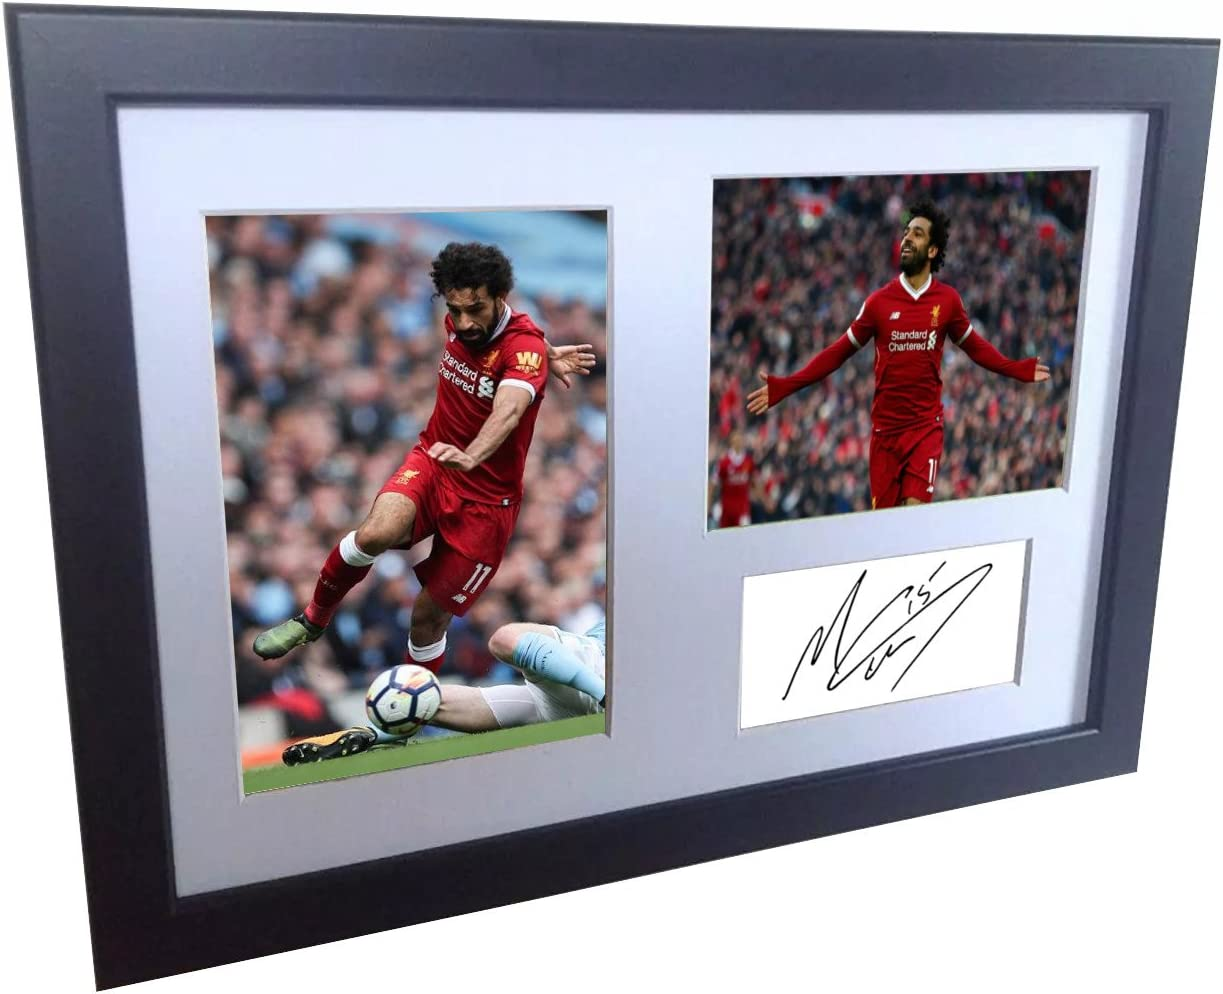 Mohamed Mo Salah 12x8 A4 Signed Liverpool FC - Autographed Photo Photograph Picture Frame Gift Soccer